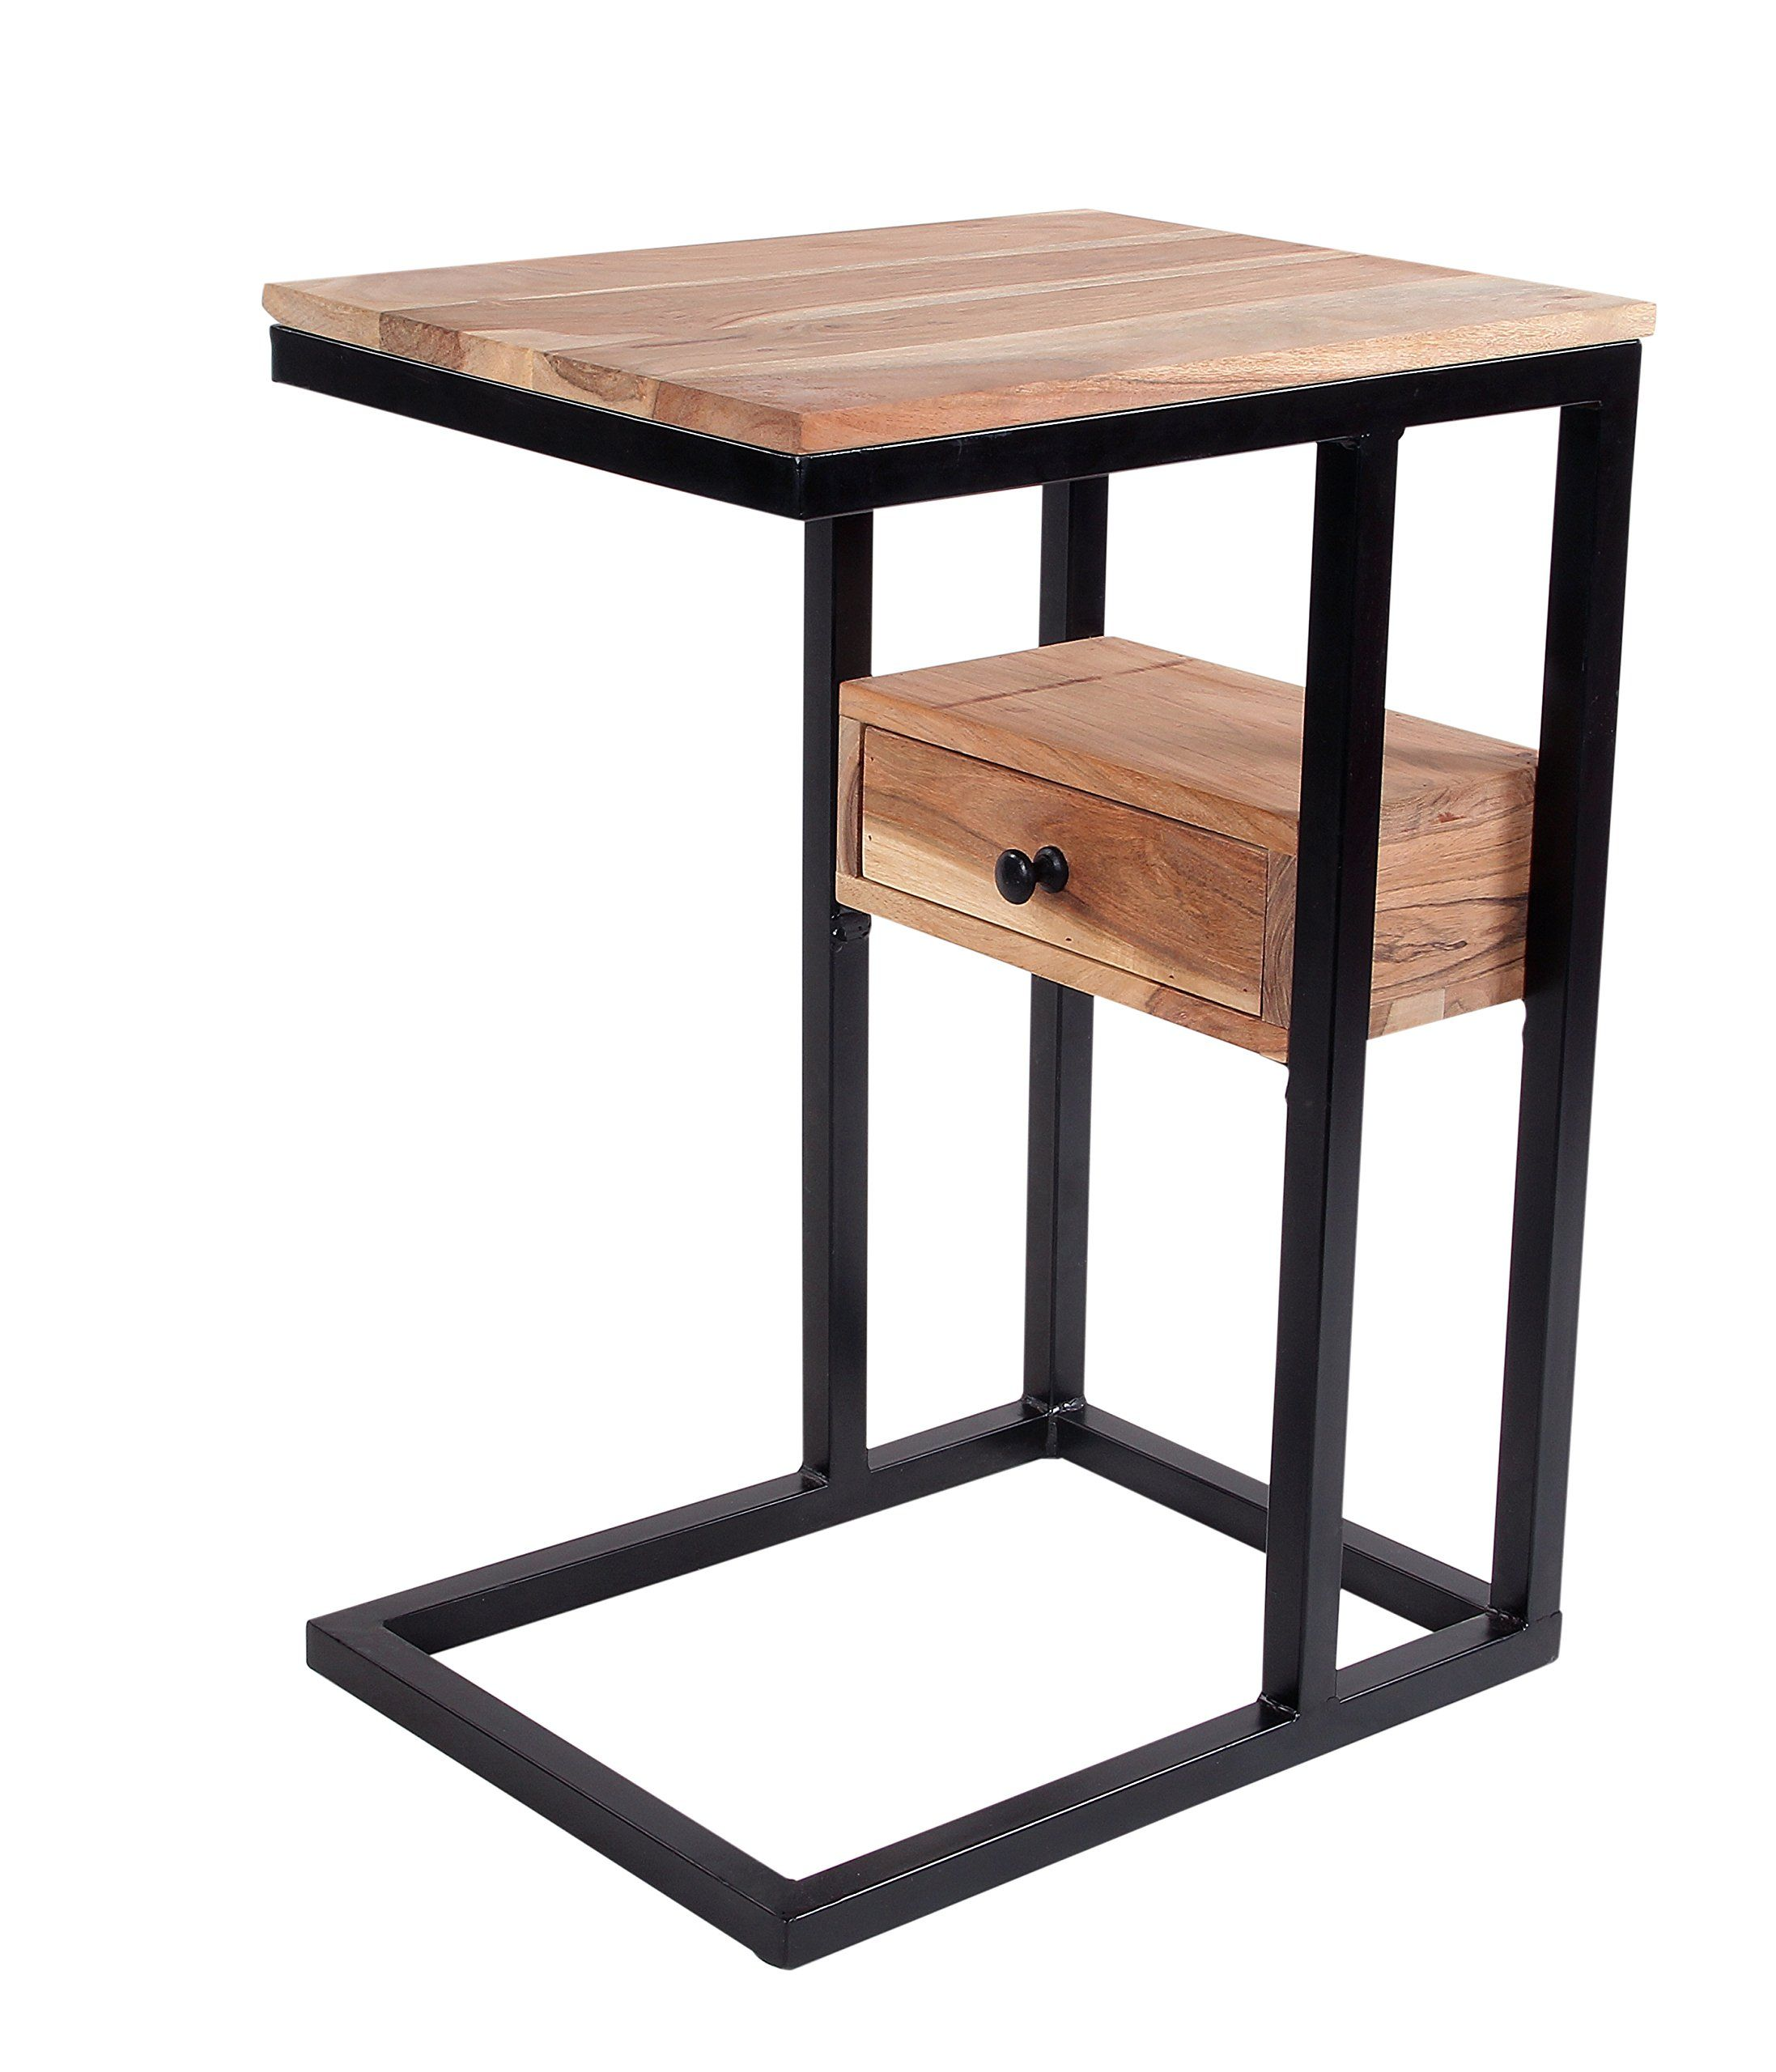 Intradeglobal Sofa Side Acacia Wood End Table With Drawer C Table